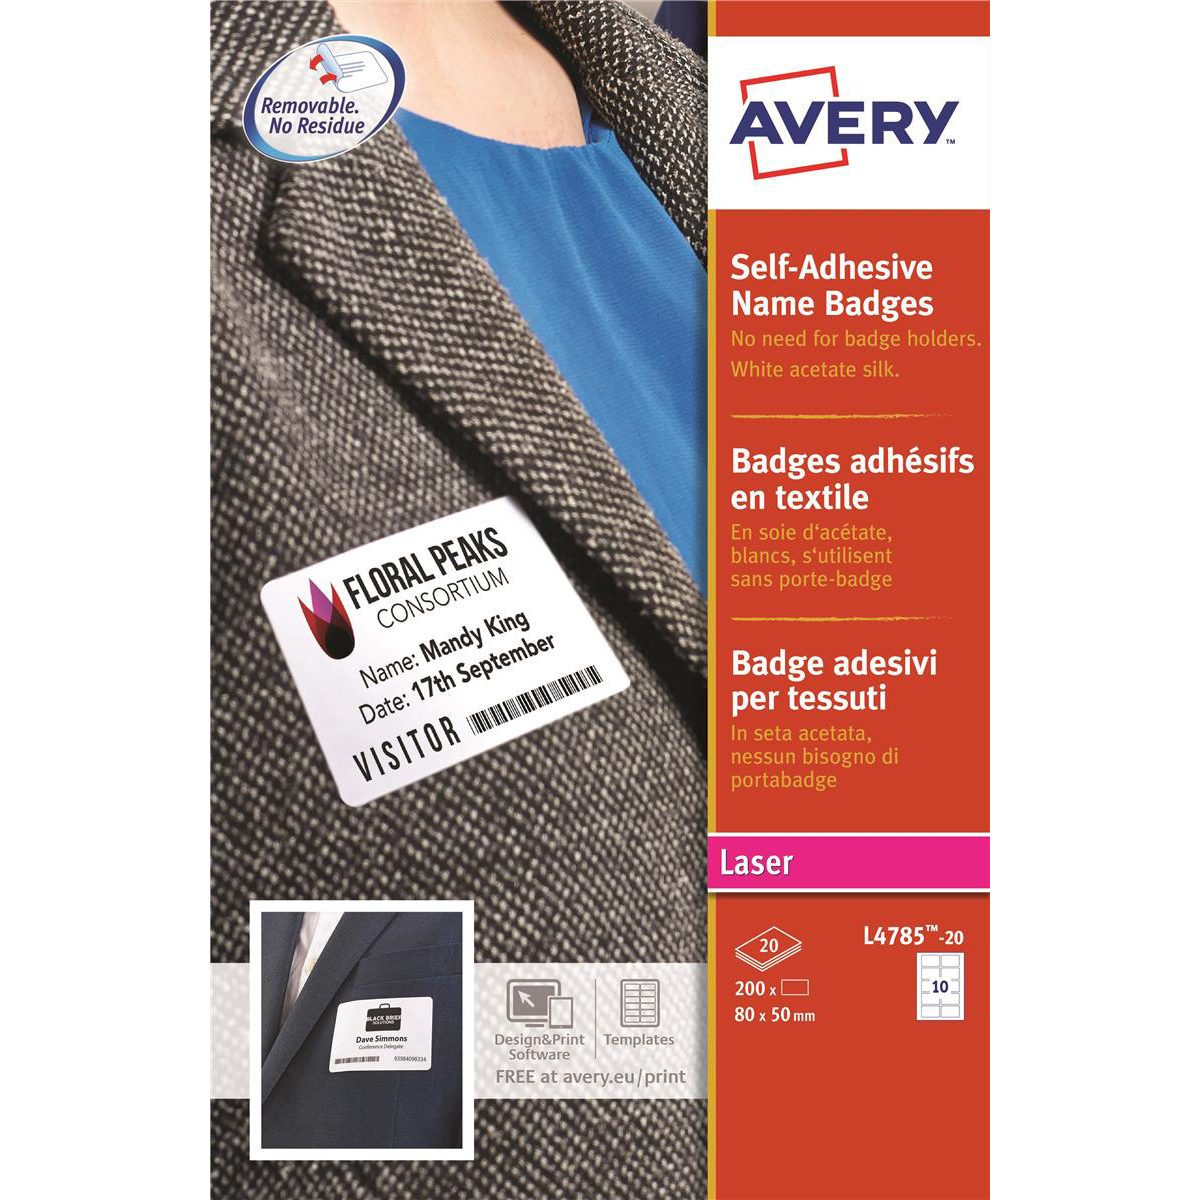 Avery Name Badge Labels Laser Self-adhesive 80x50mm White Ref L4785-20 200 Labels